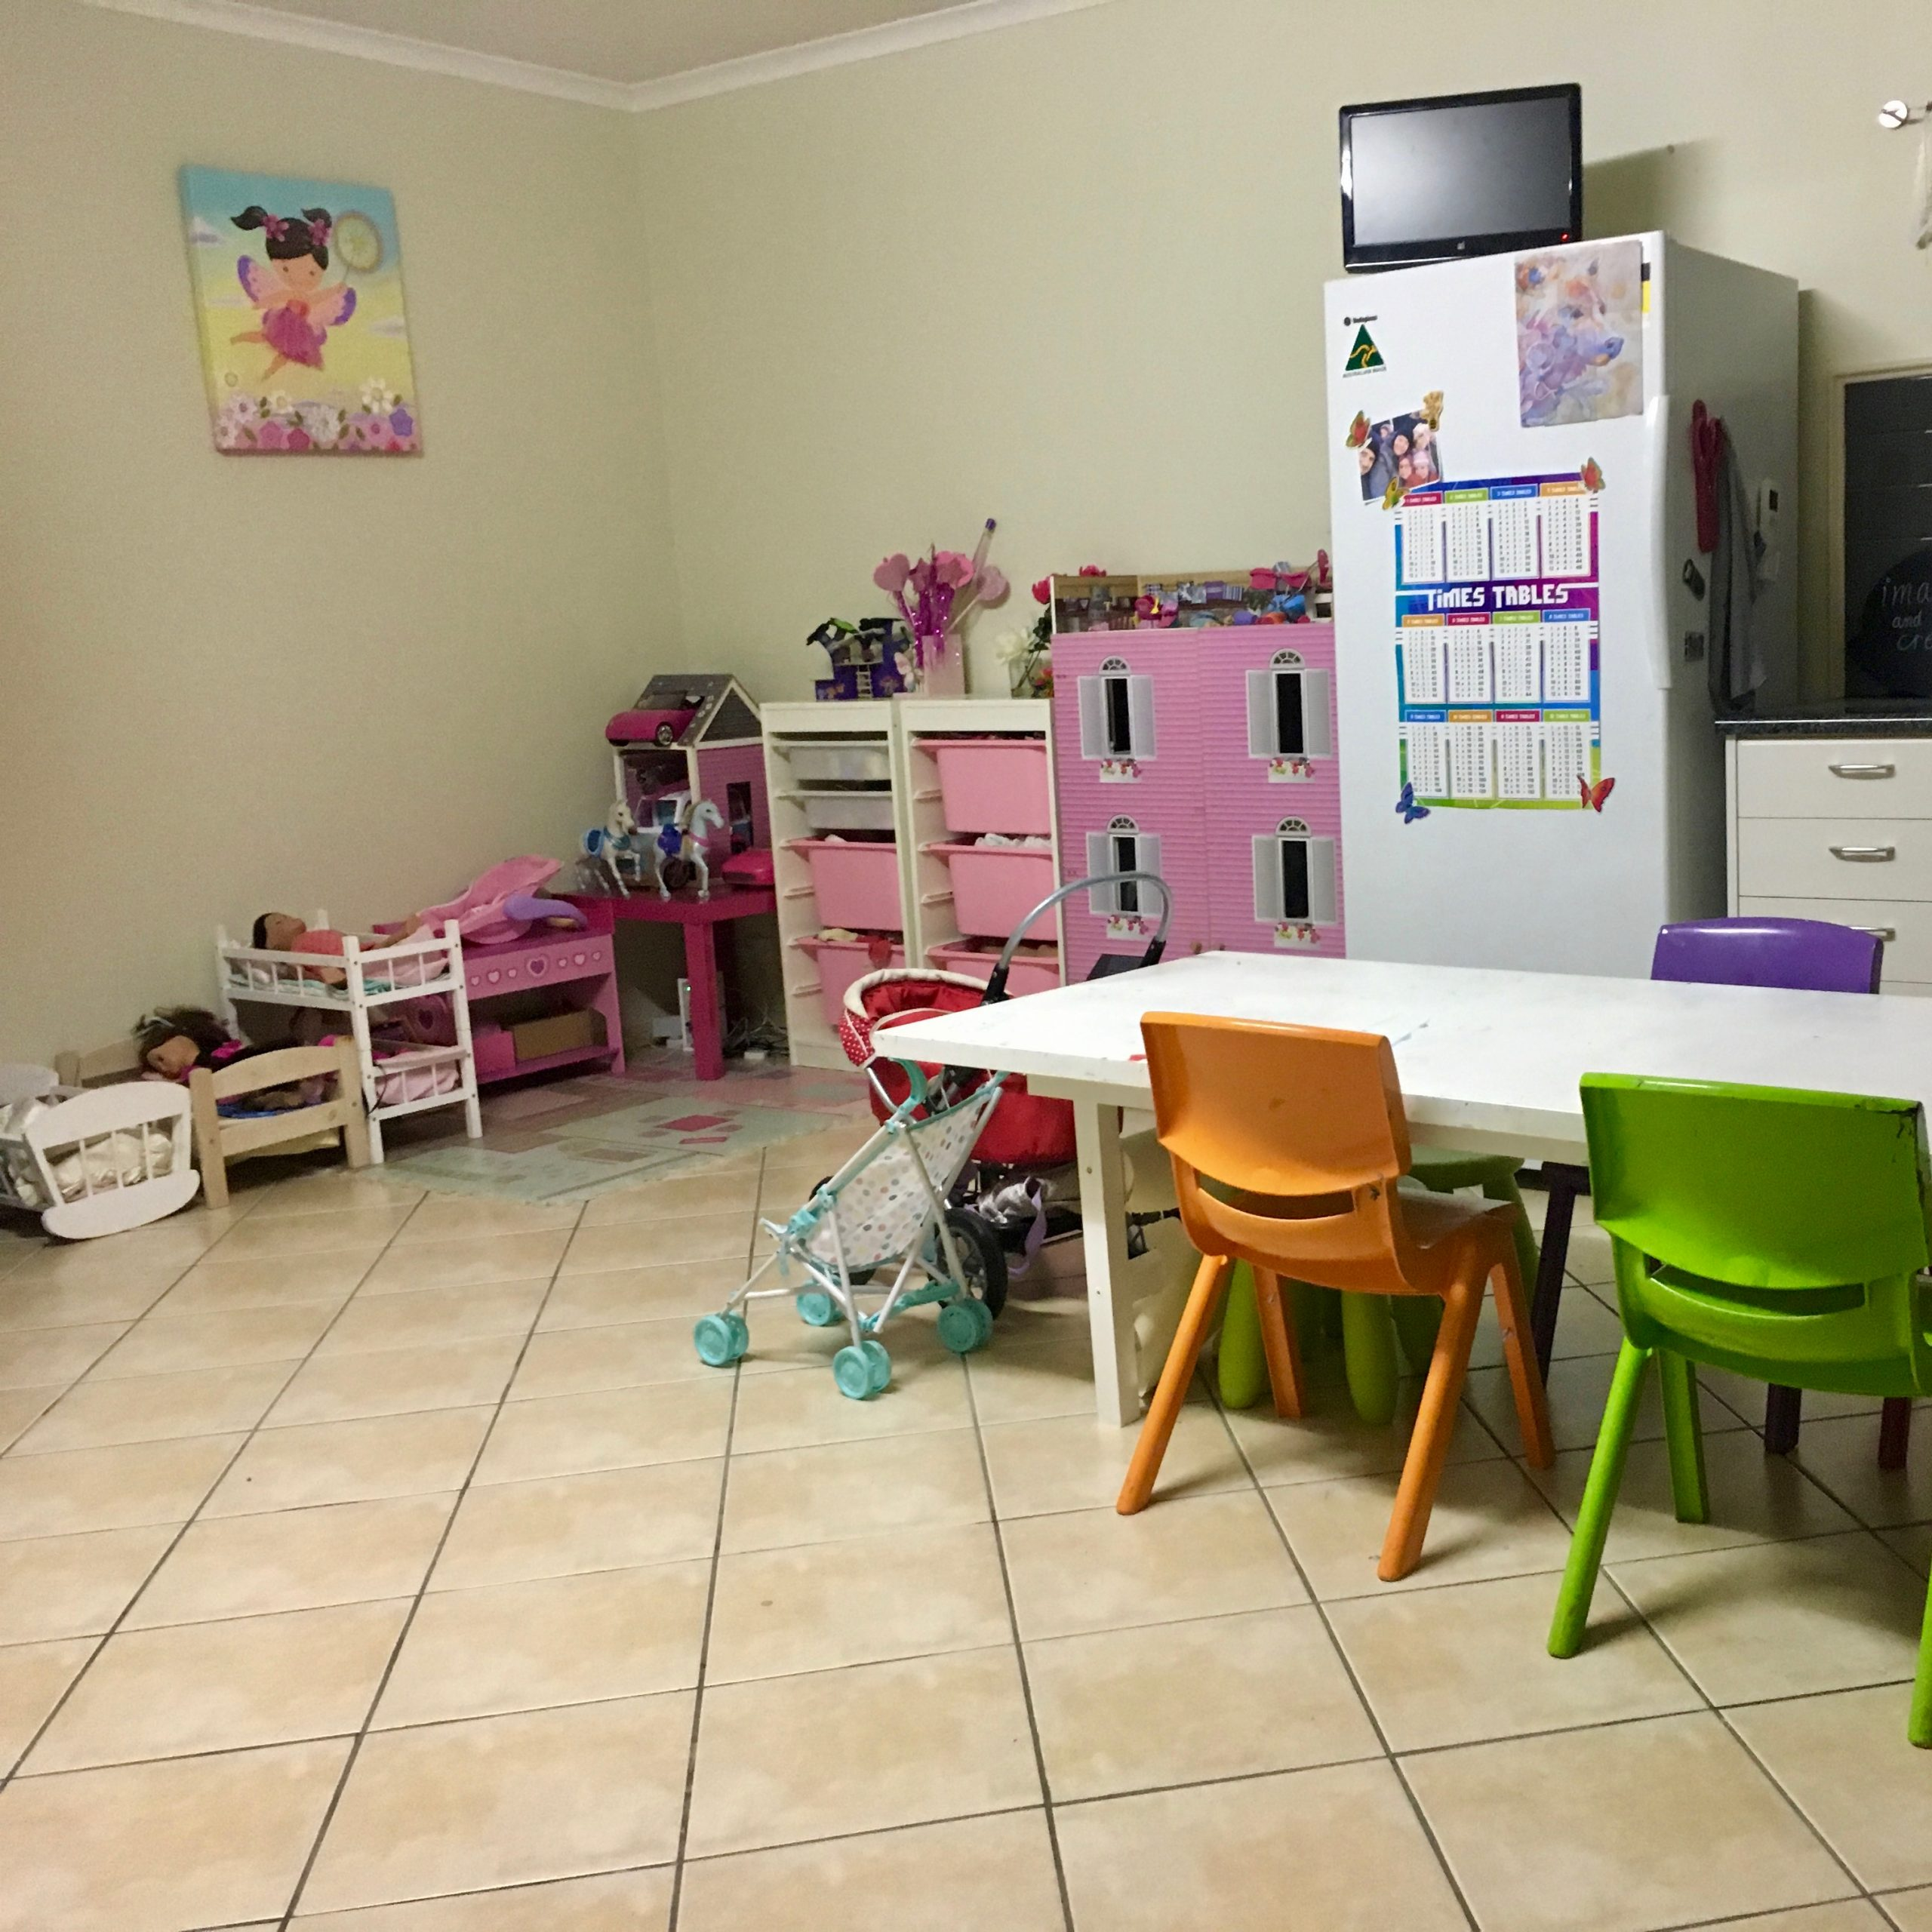 Playroom Doll Storage Before Organisation - The Organising Bee Canberra